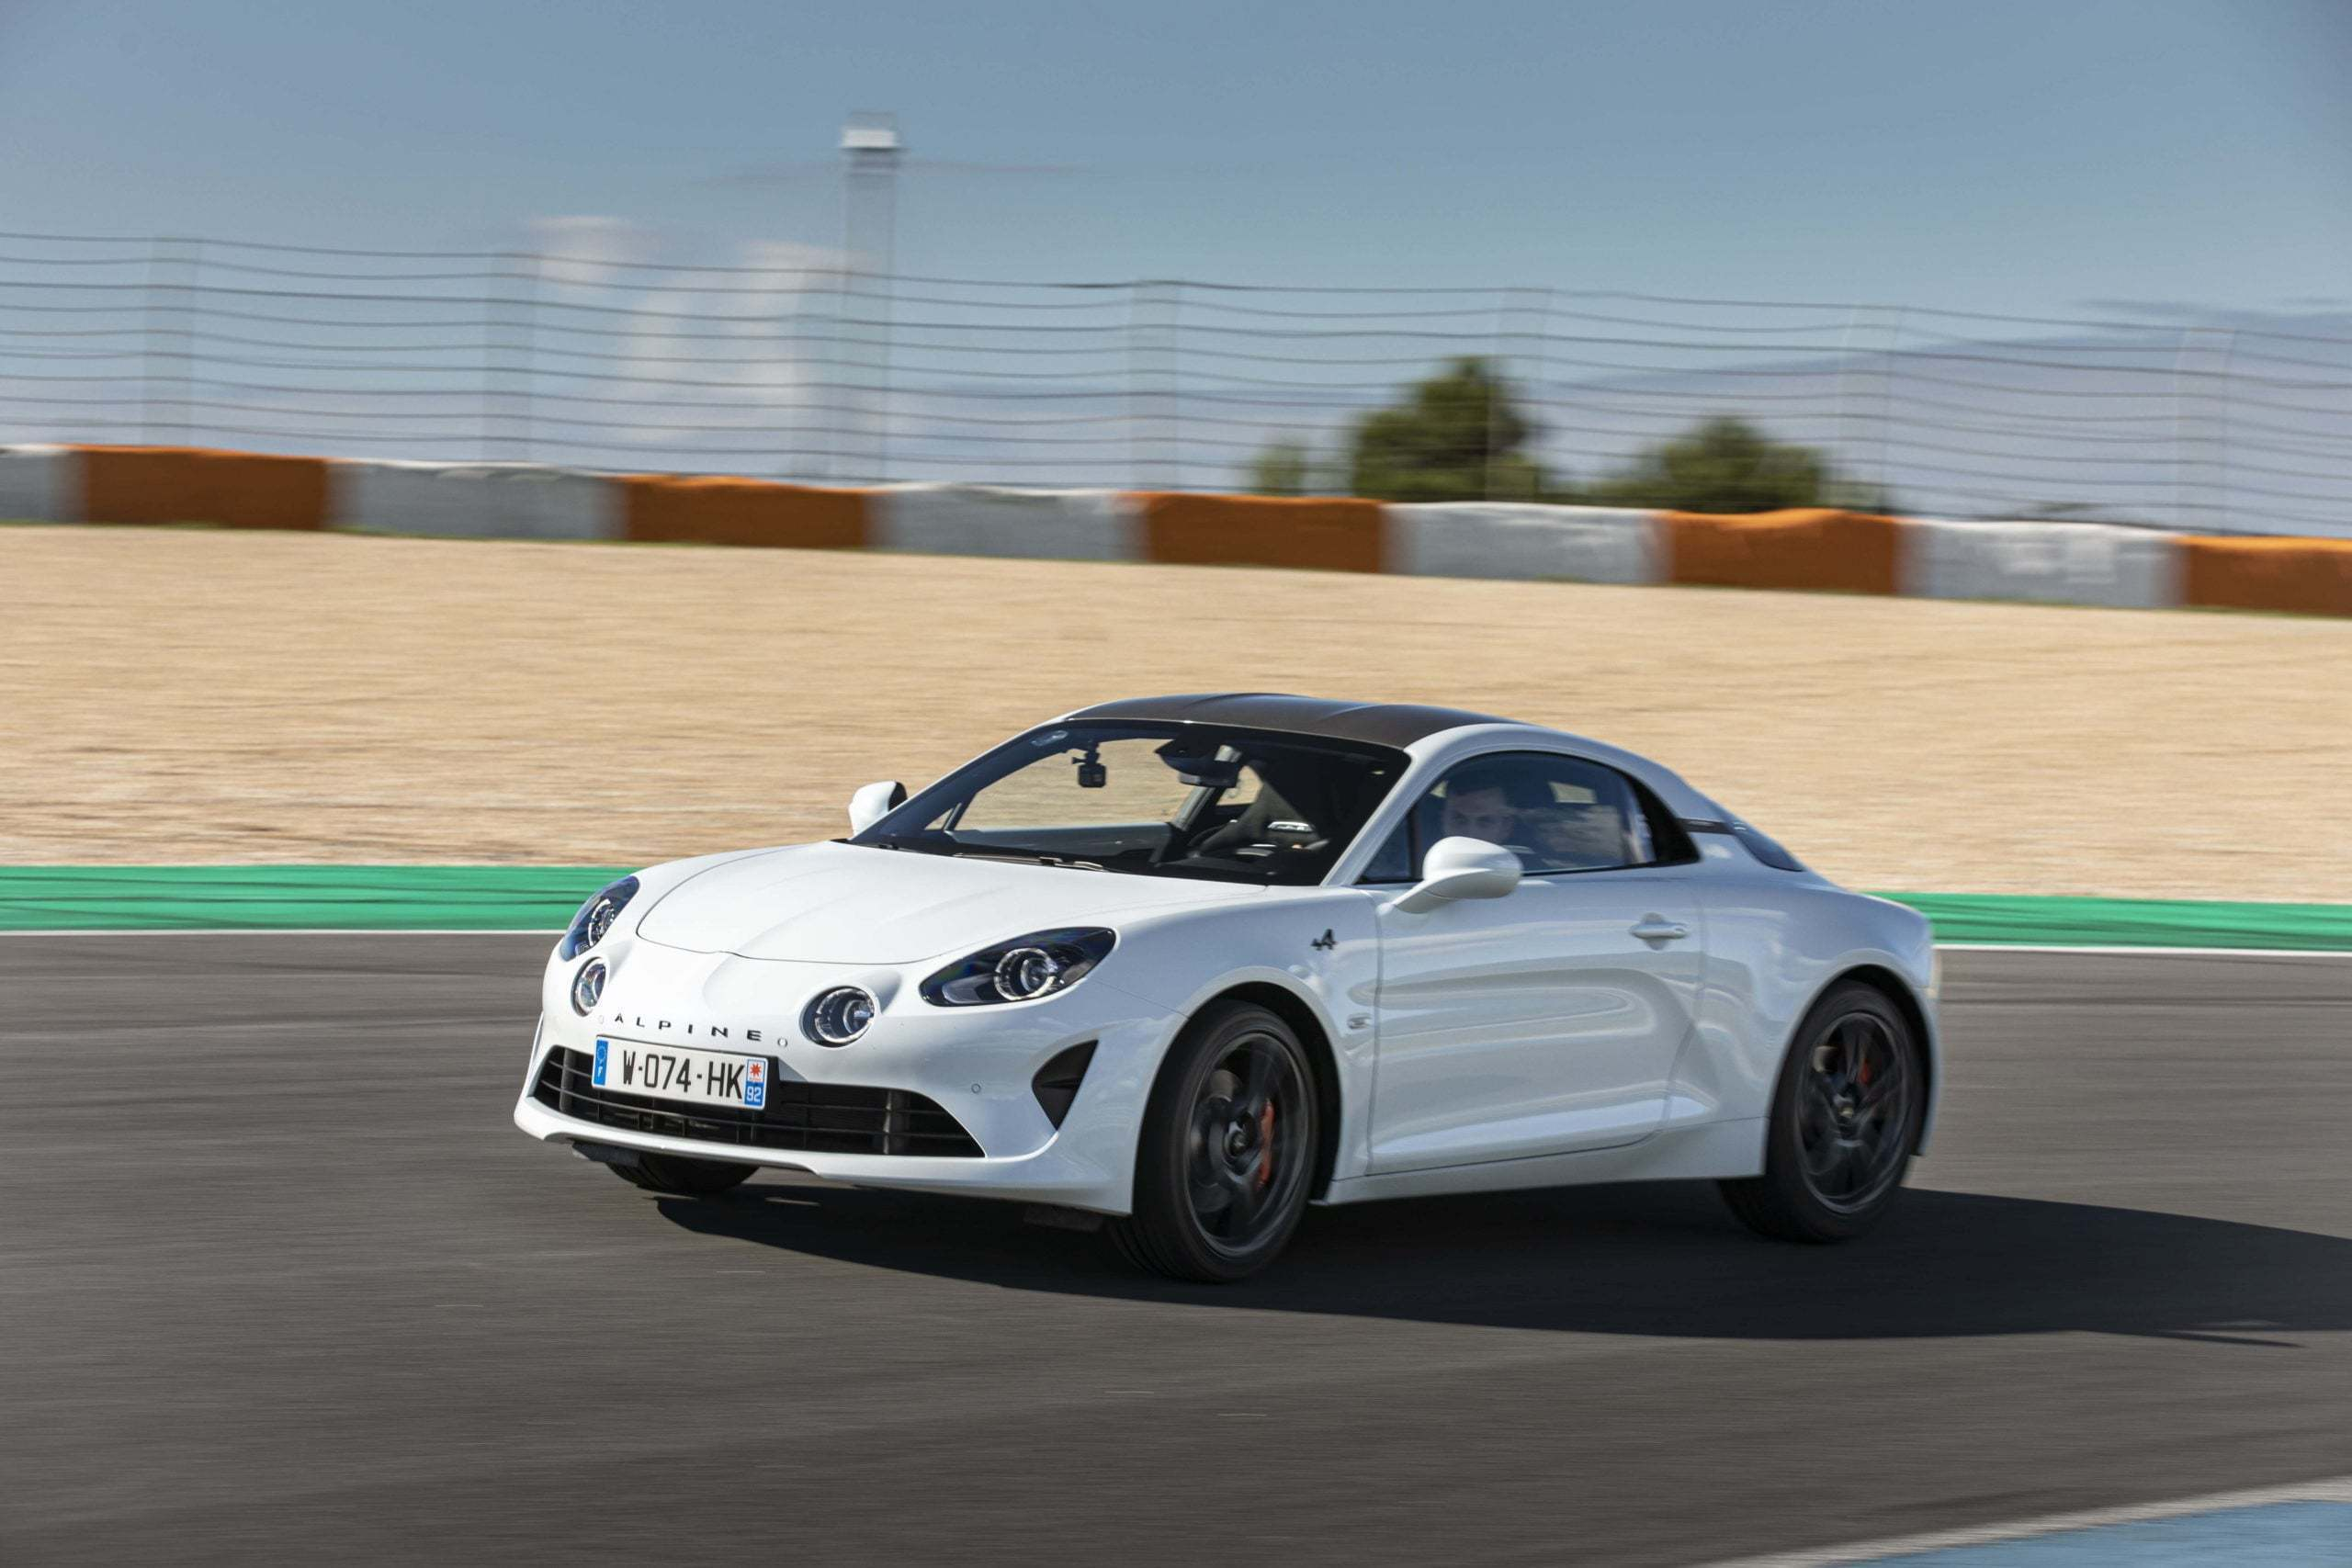 essai alpine a110s estoril 1 scaled | Essai Alpine A110S : le point sur les S